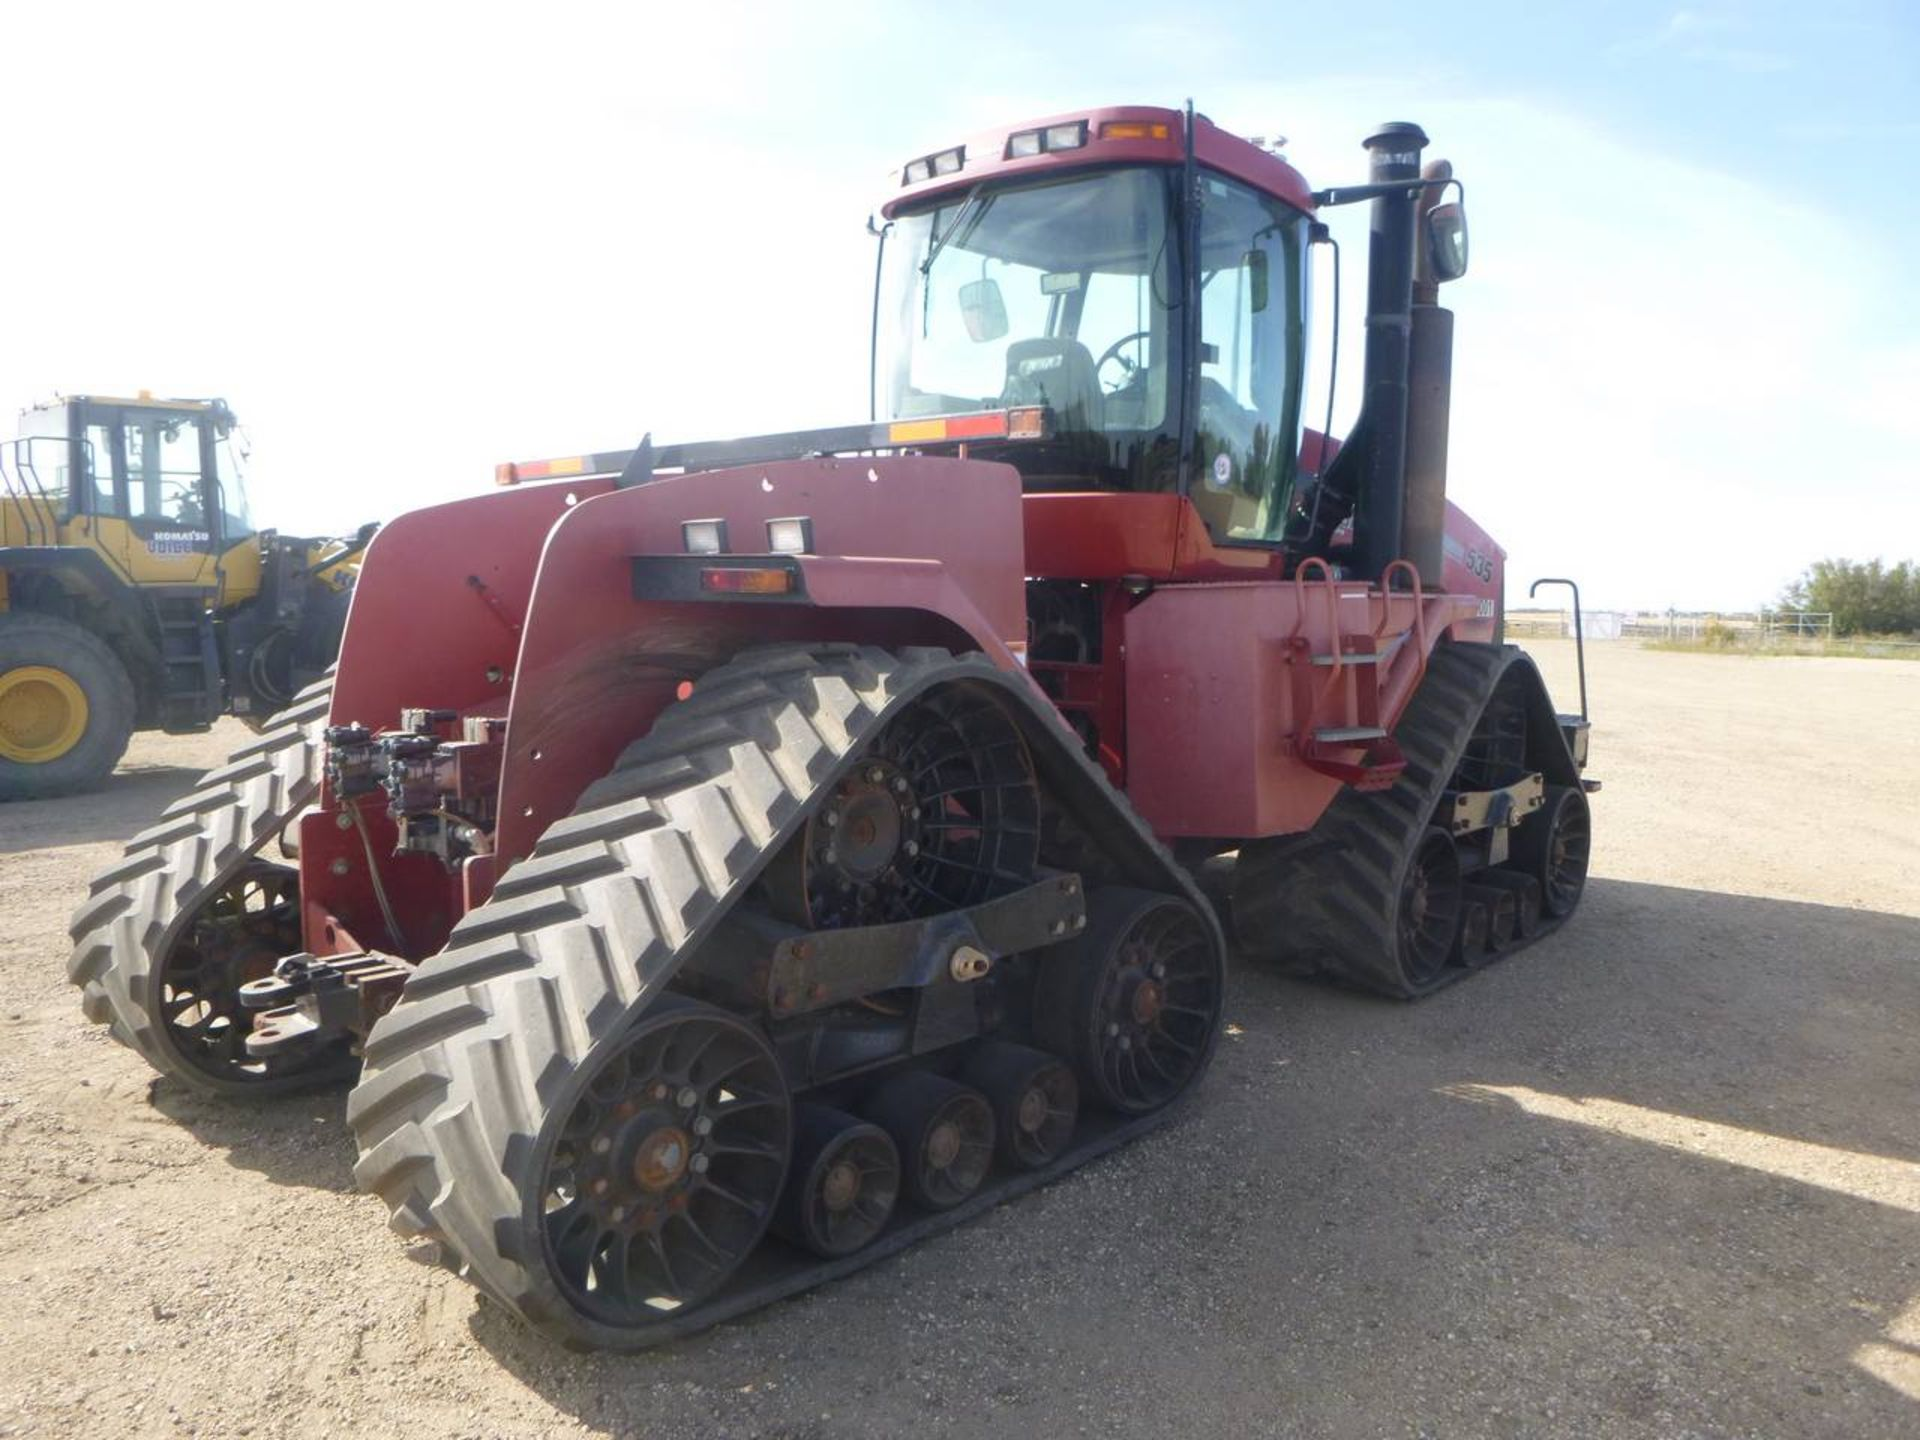 2008 Case IH 535 Tractor - Image 3 of 9